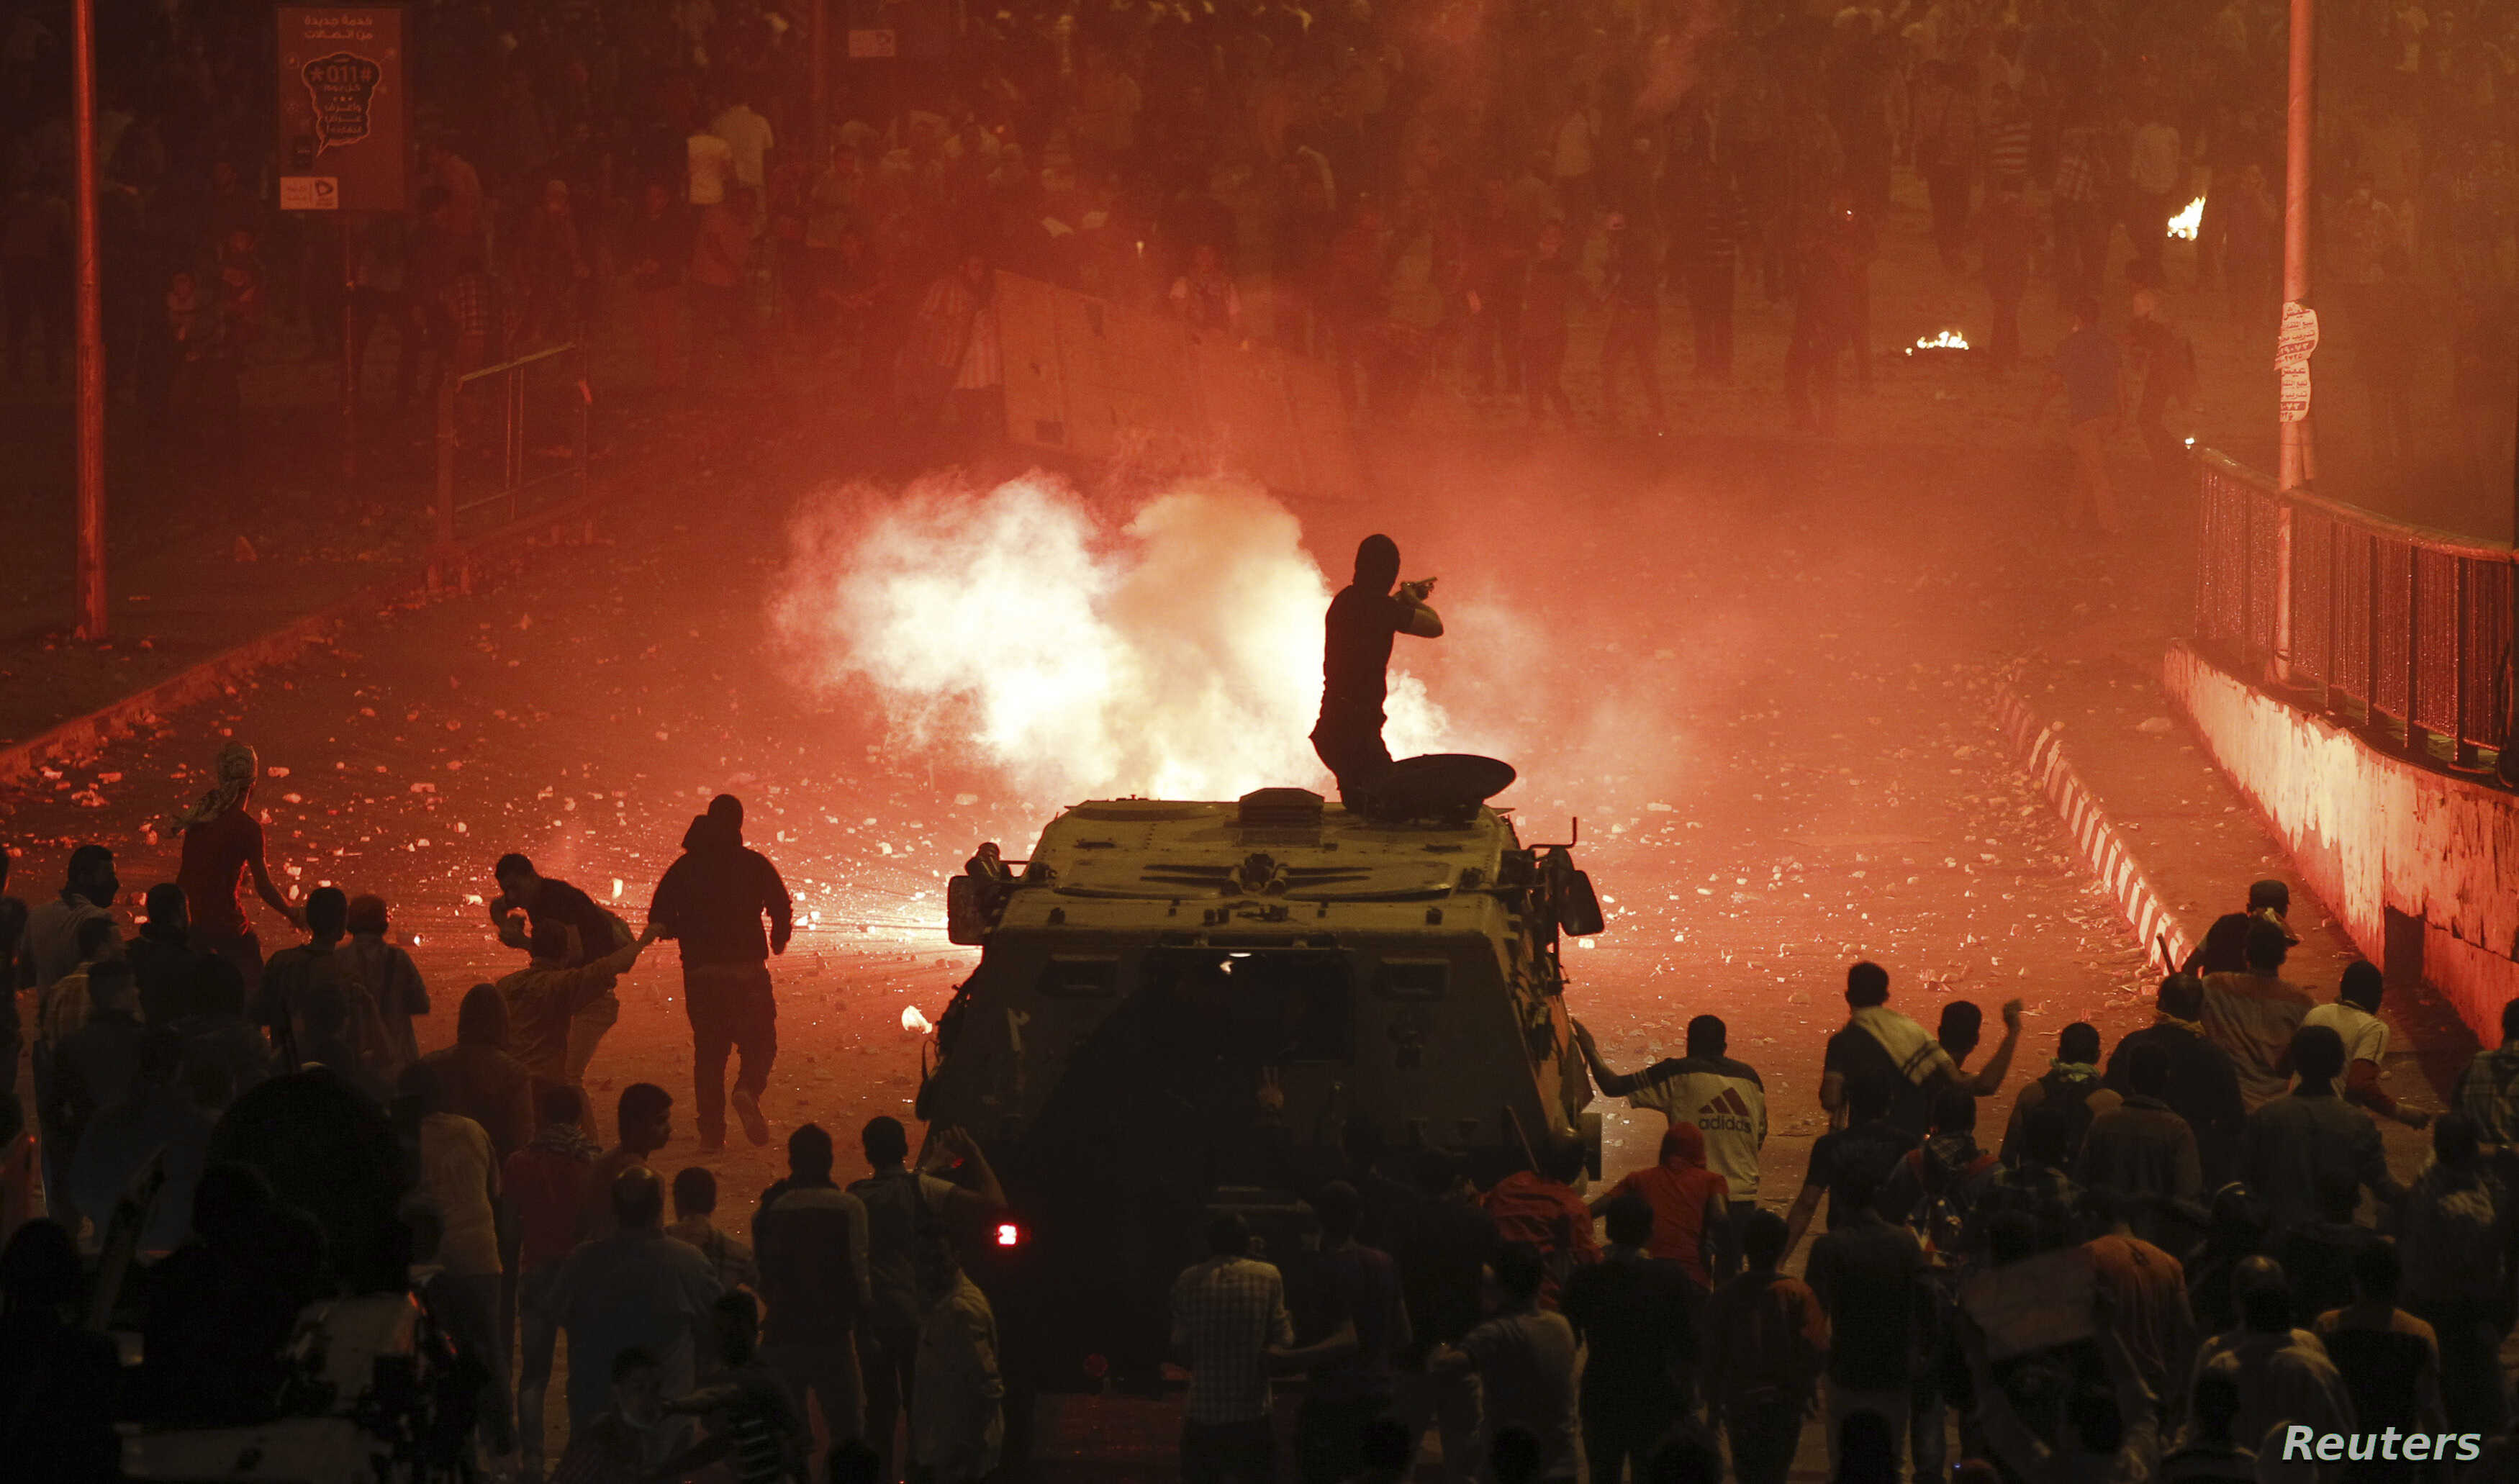 A riot police officer, on a armoured personnel carrier surrounded by anti-Morsi protesters (foreground), fires rubber bullets at members of the Muslim Brotherhood and supporters of Morsi, Oct. 6, 2013.